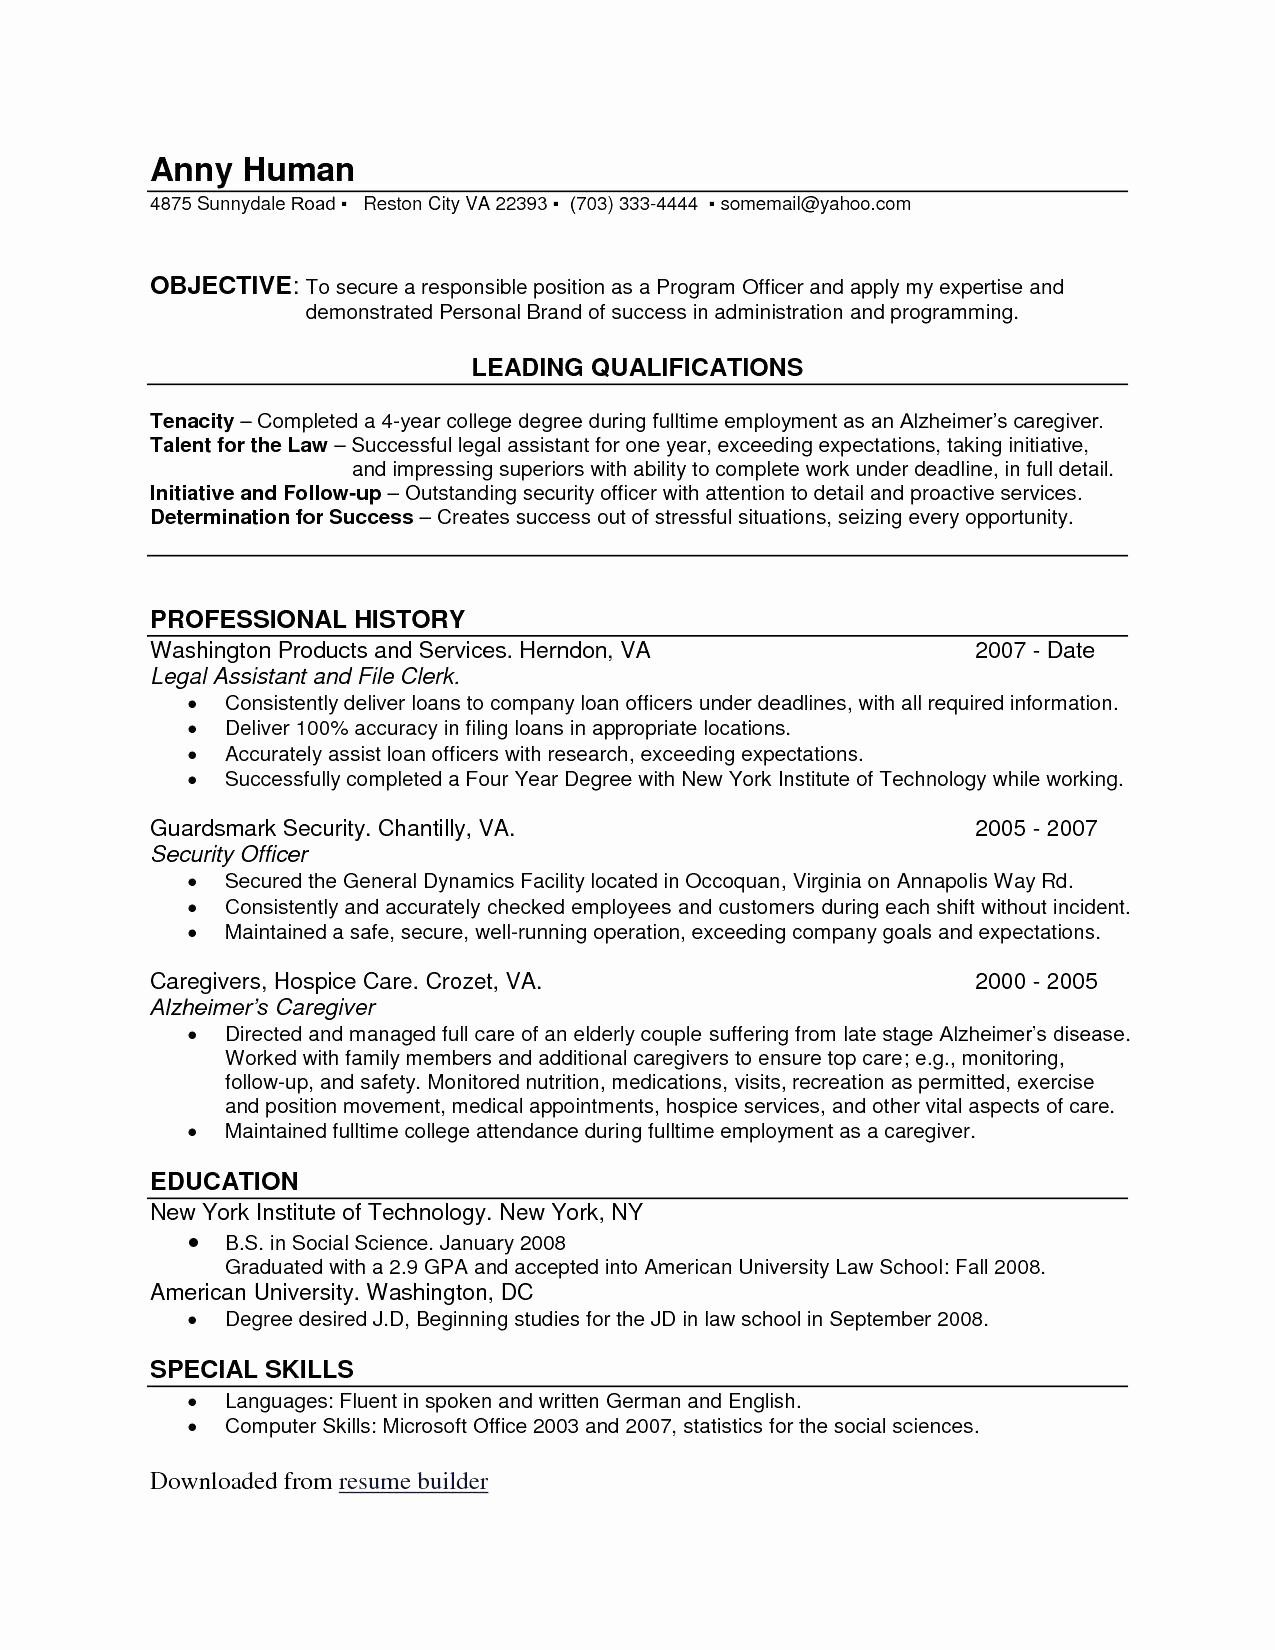 Post Resume Online - 25 Lovely Upload Resume Line